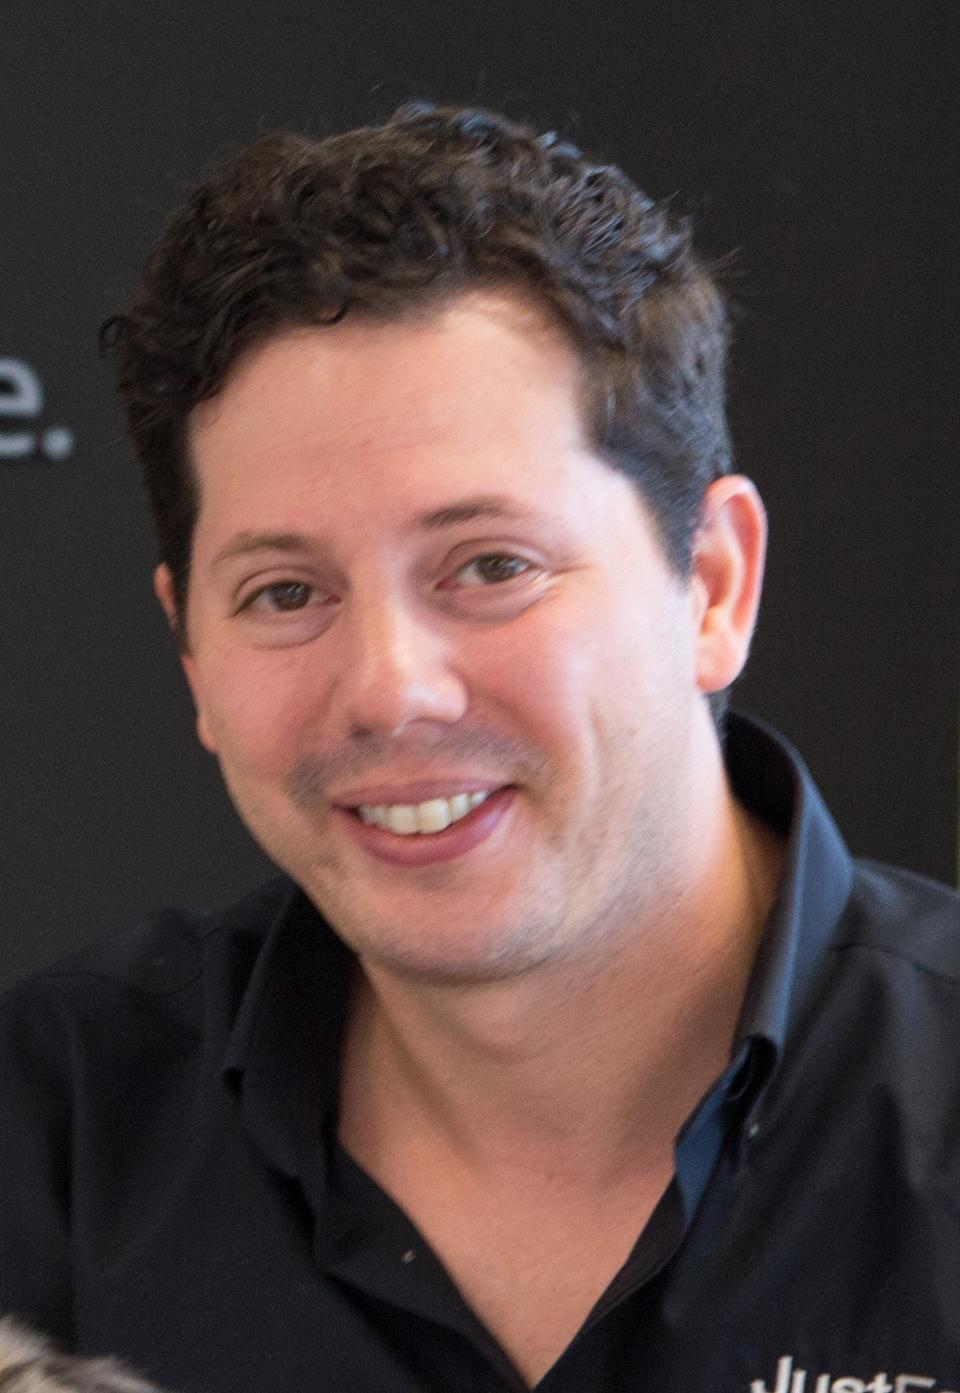 young smiling man in open collar black shirt